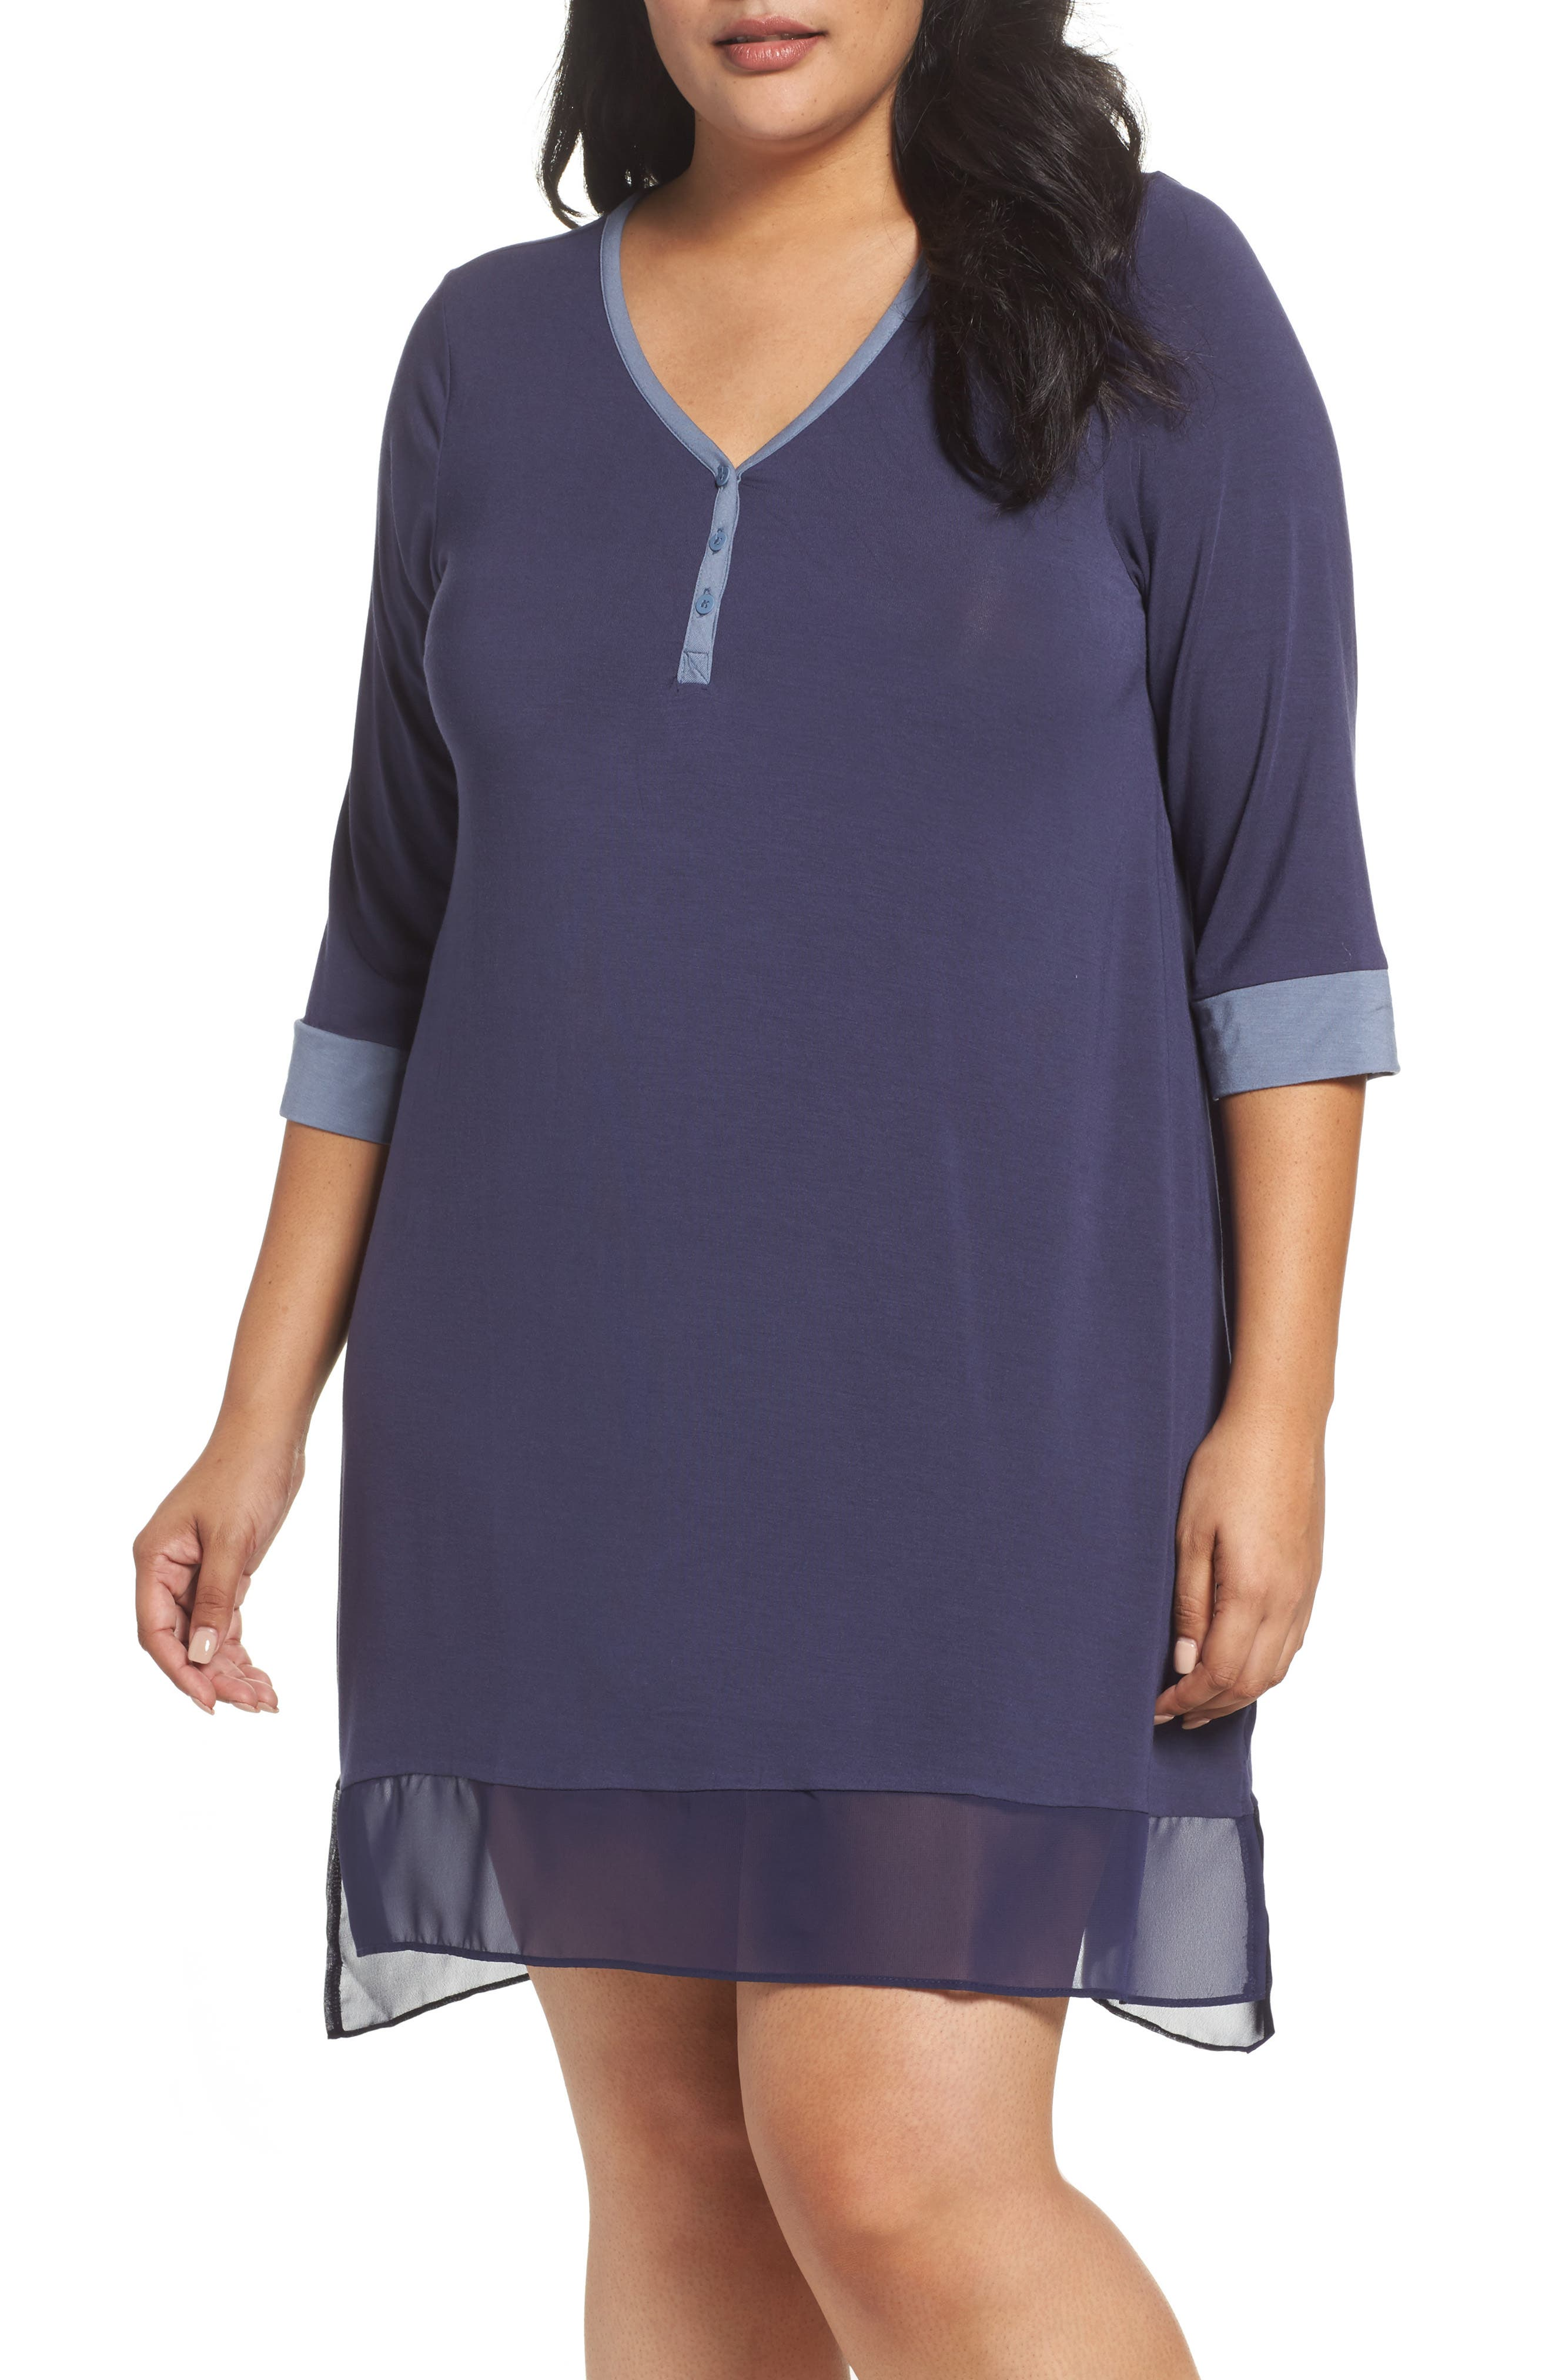 Henley Sleep Shirt,                             Main thumbnail 1, color,                             001